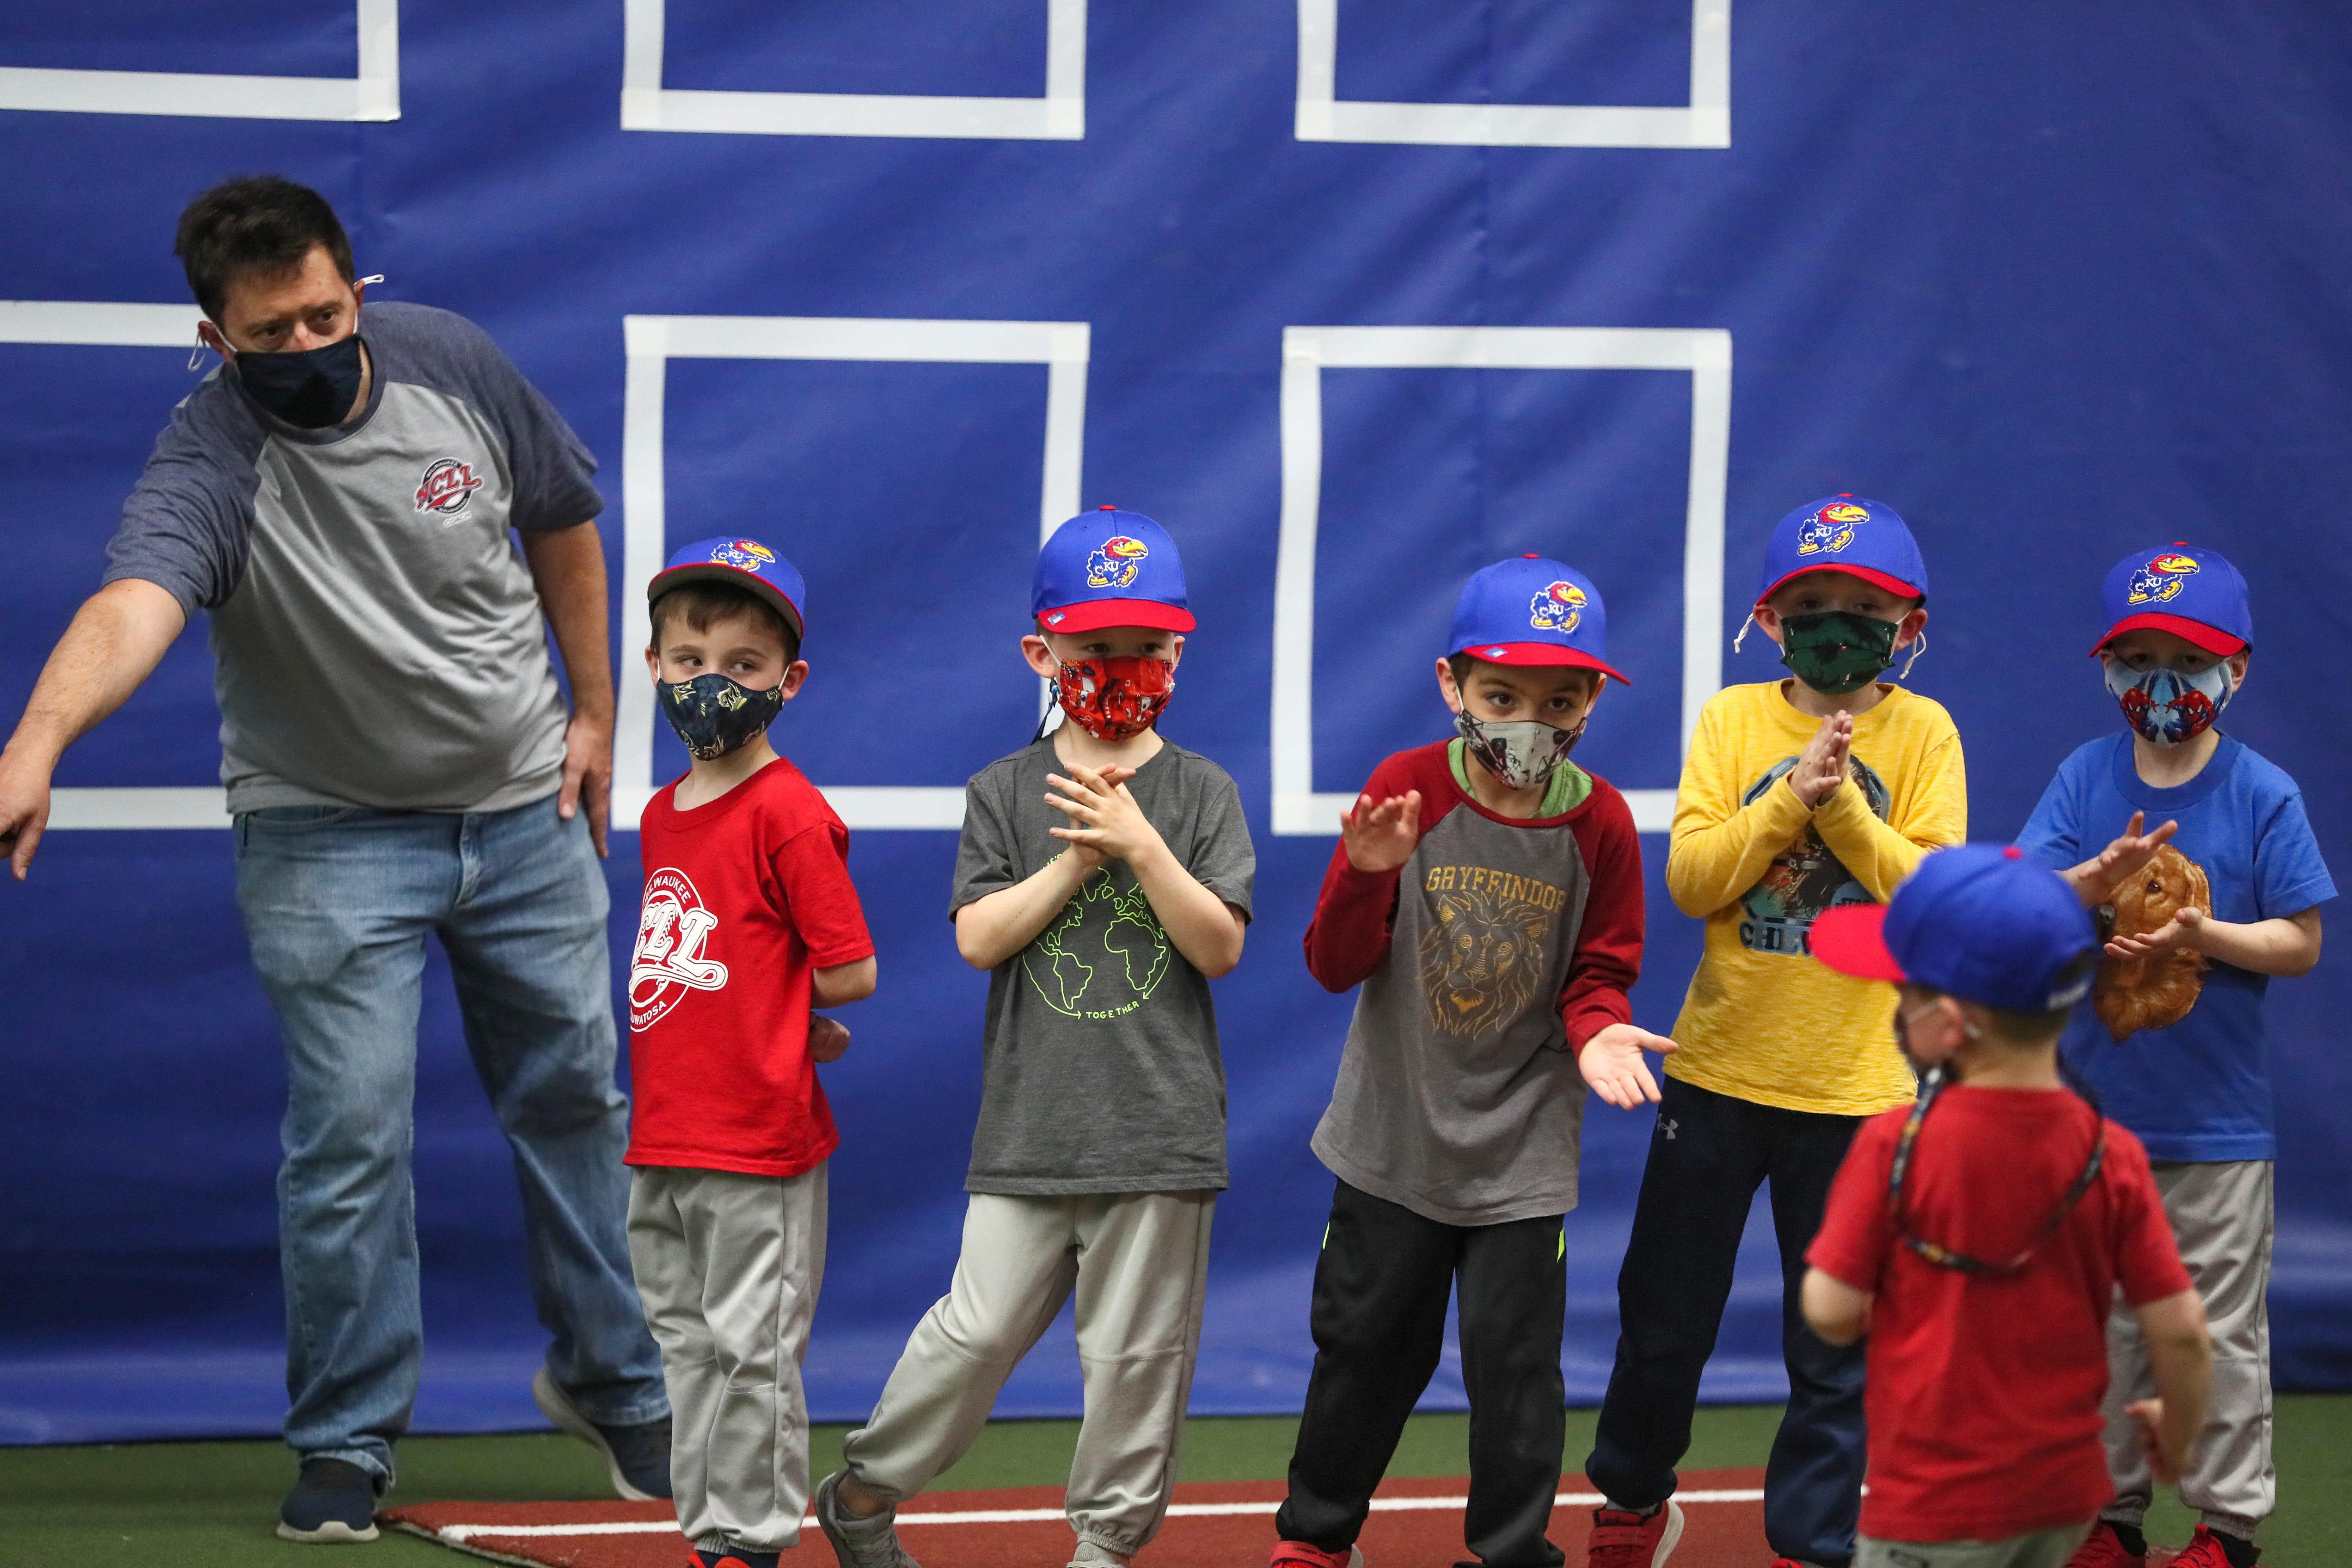 Kansas T-Ball Hawks player Matias Werstein-Aravena, 5, middle, cheers on his teammate as he runs to home plate April 22, 2021, in Milwaukee.